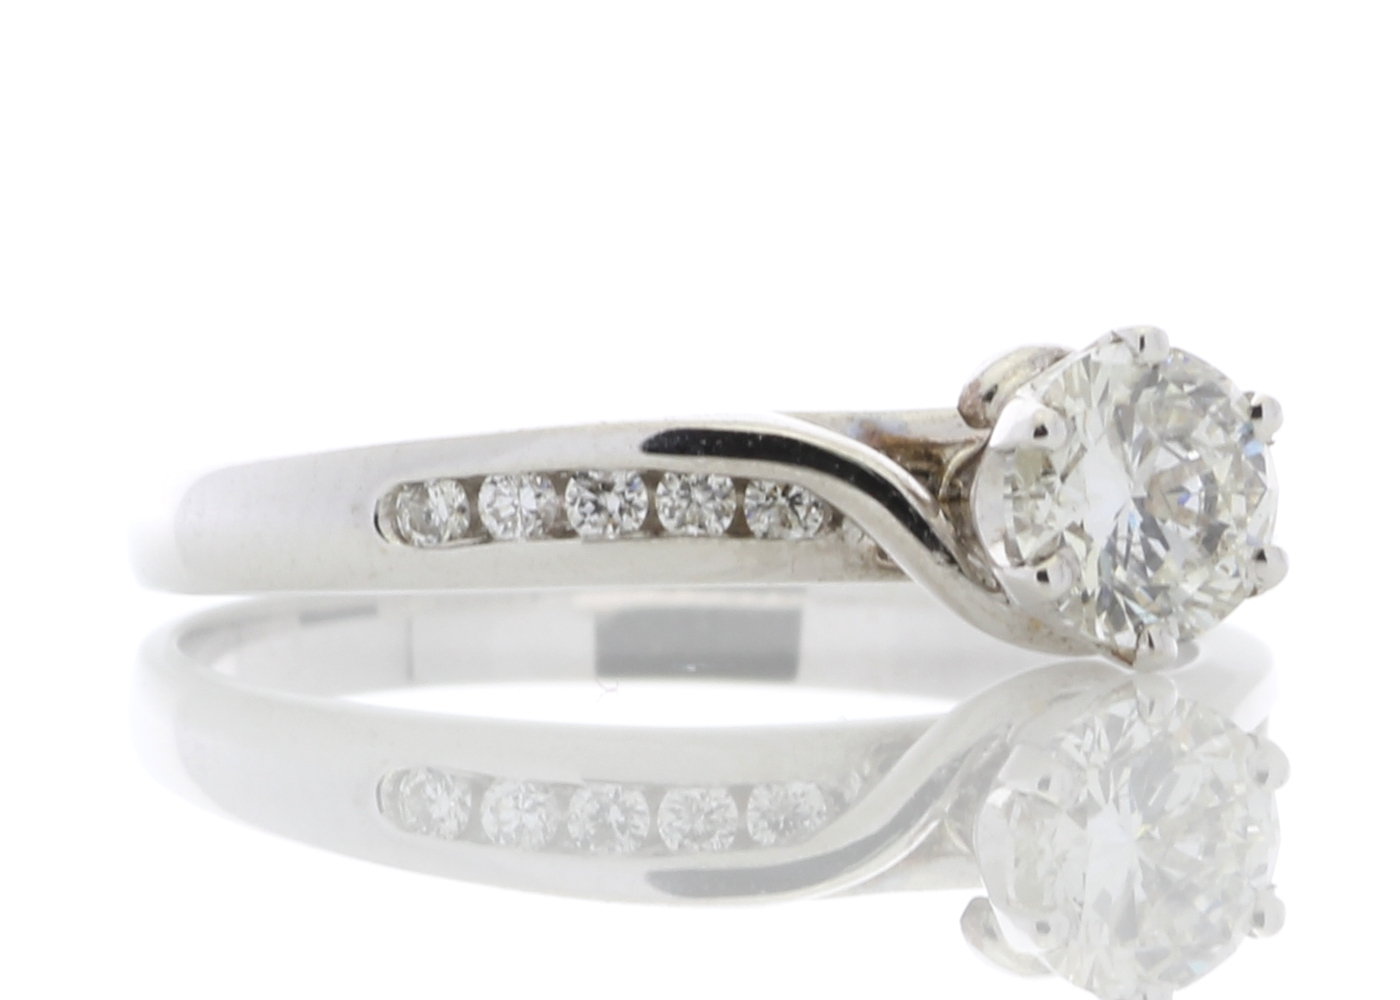 18ct White Gold Diamond Ring With Stone Set shoulders 0.61 Carats - Image 4 of 4